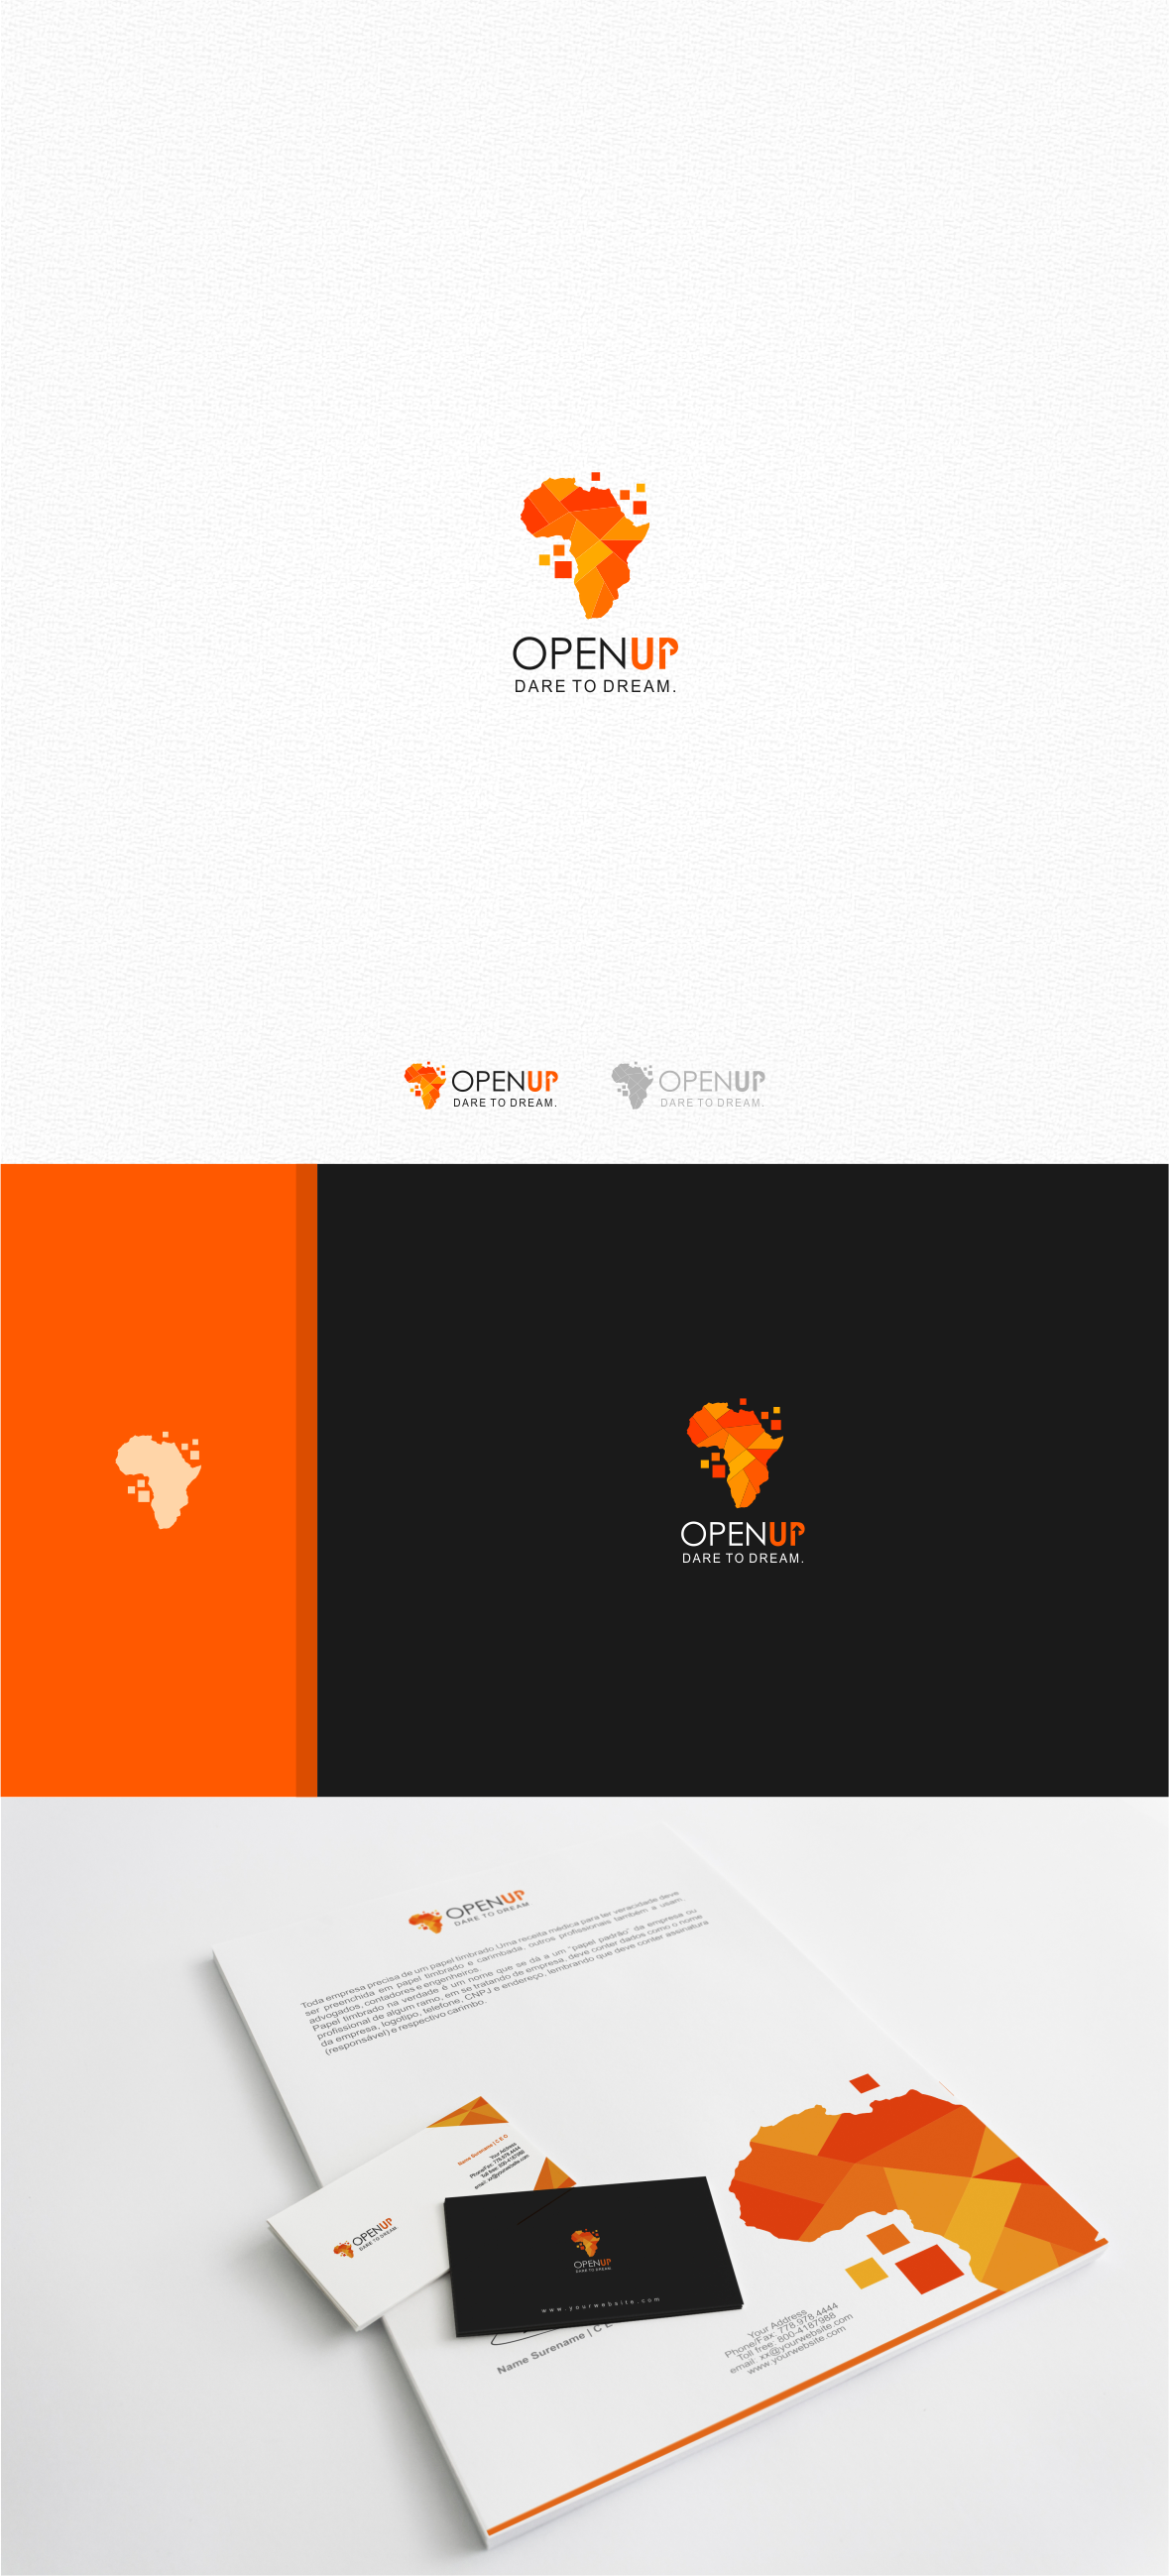 Create a simple but luxurious logo for media and communication.